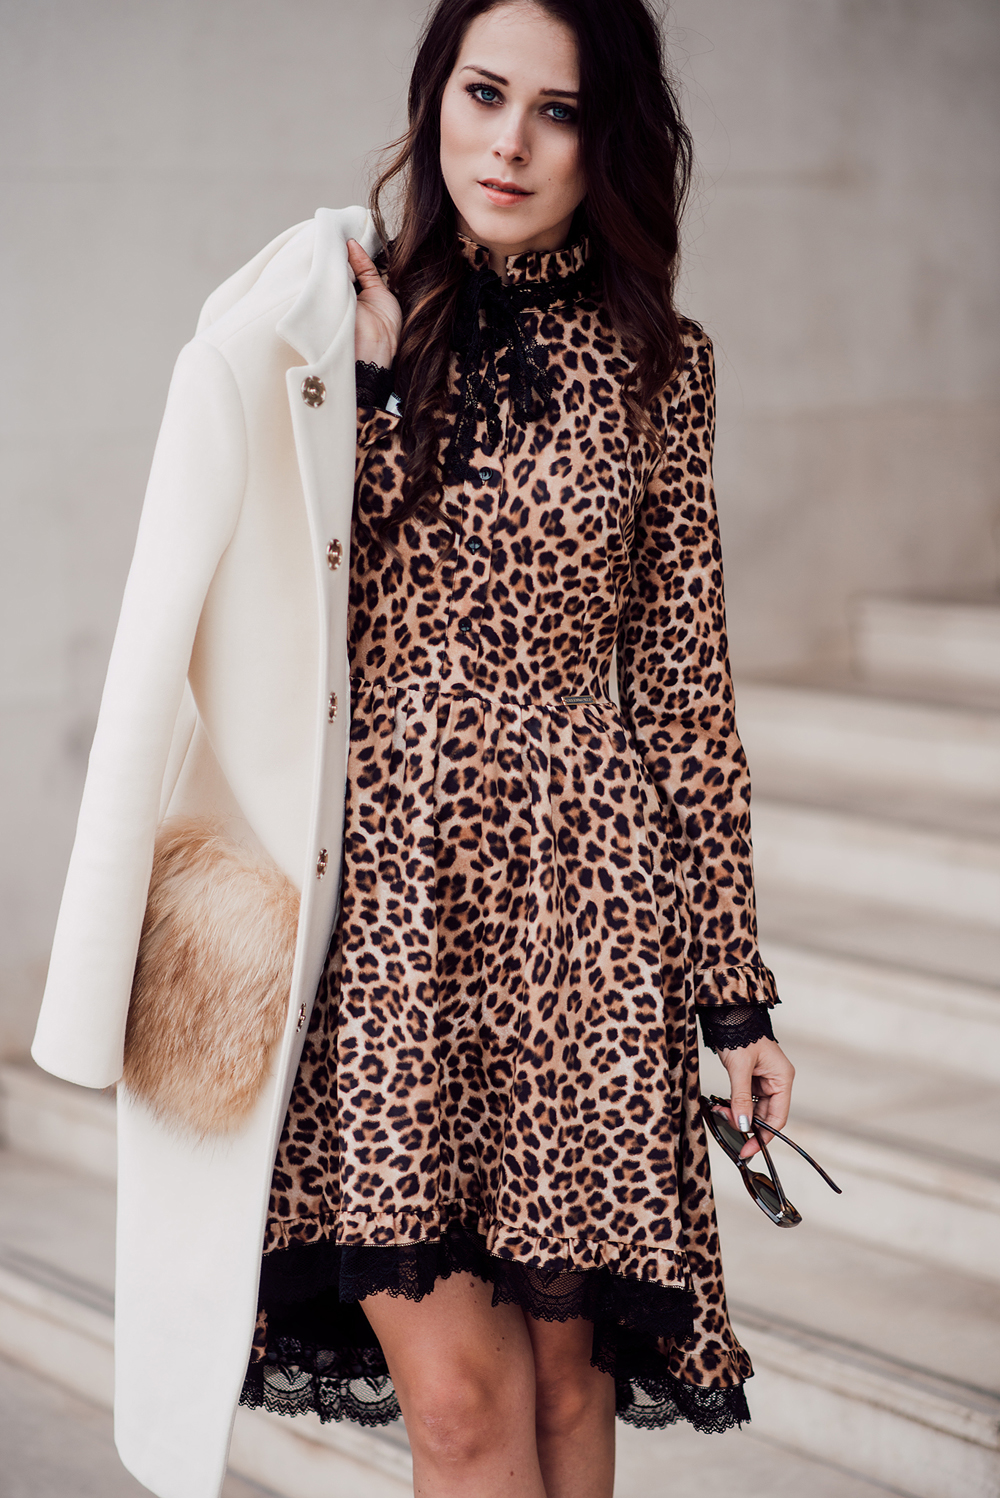 eva-ahacevcic_love-eva_terminal3_ootd_leopard-print_dress_fashion-blogger-11